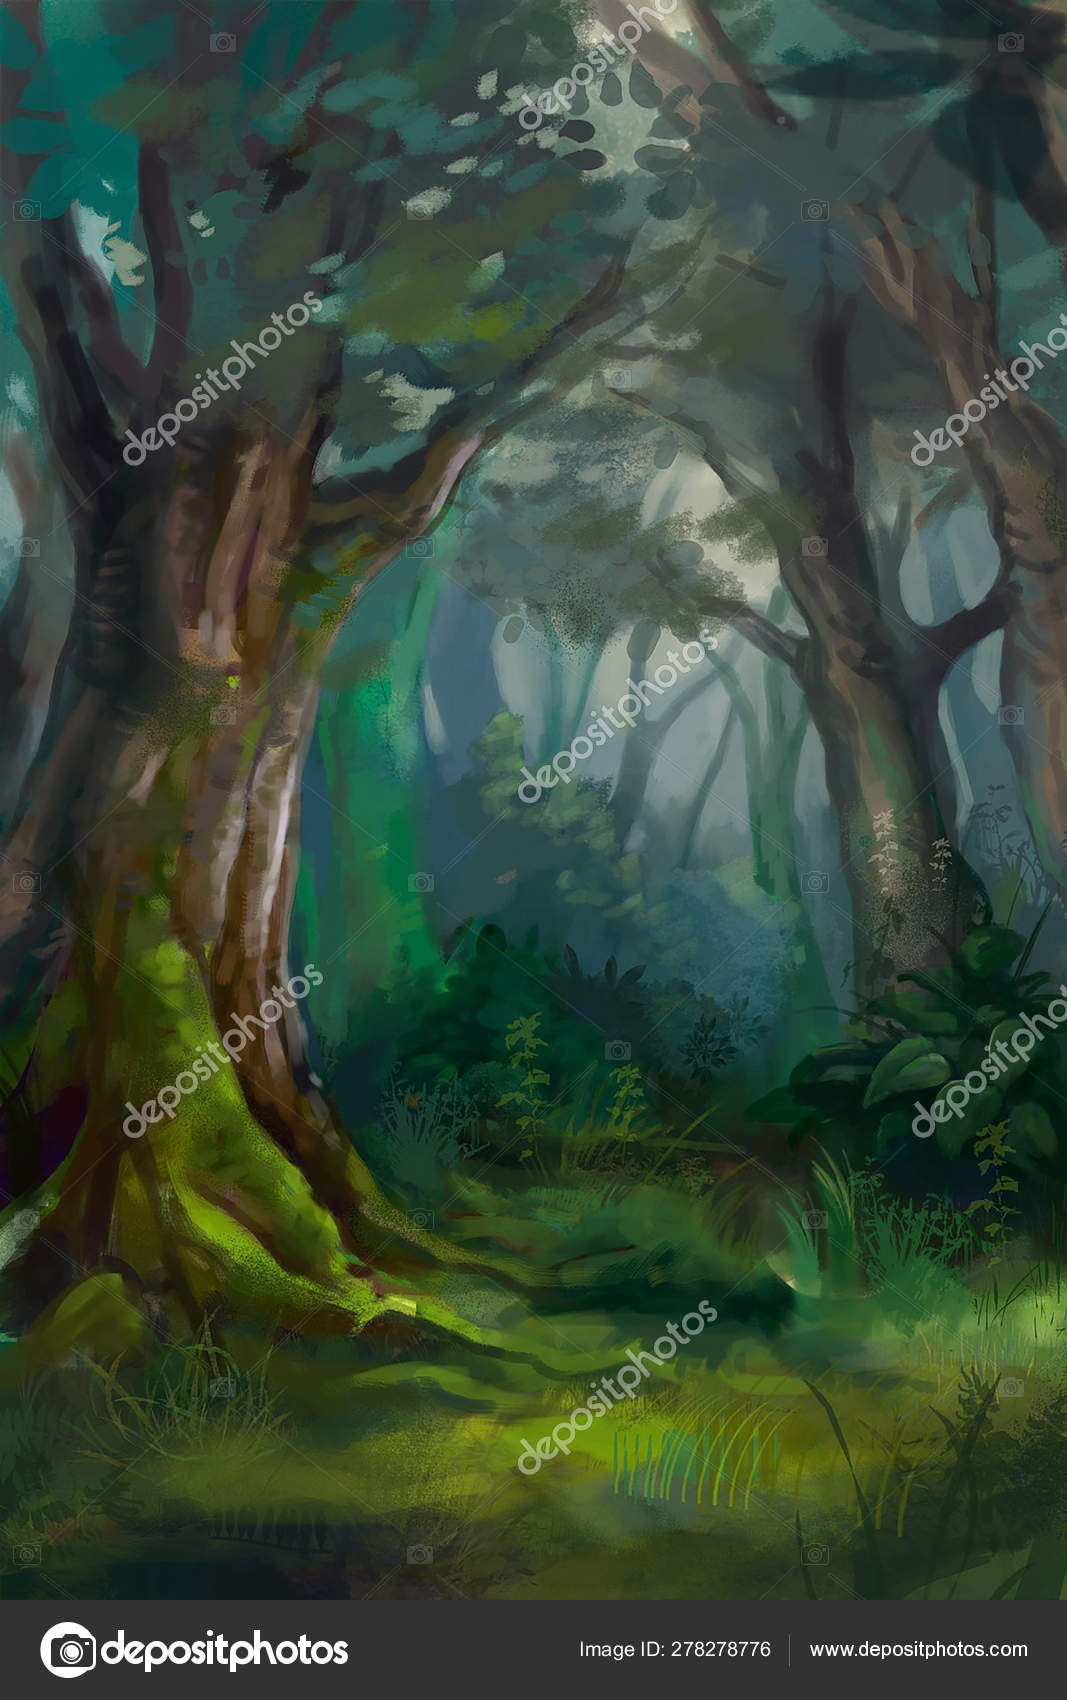 Dense forest painting for sale by artist pamela rebecca vincent at lowest price in india. Illustration Of Dense Forest Stock Photo By C Dmitry1991 278278776